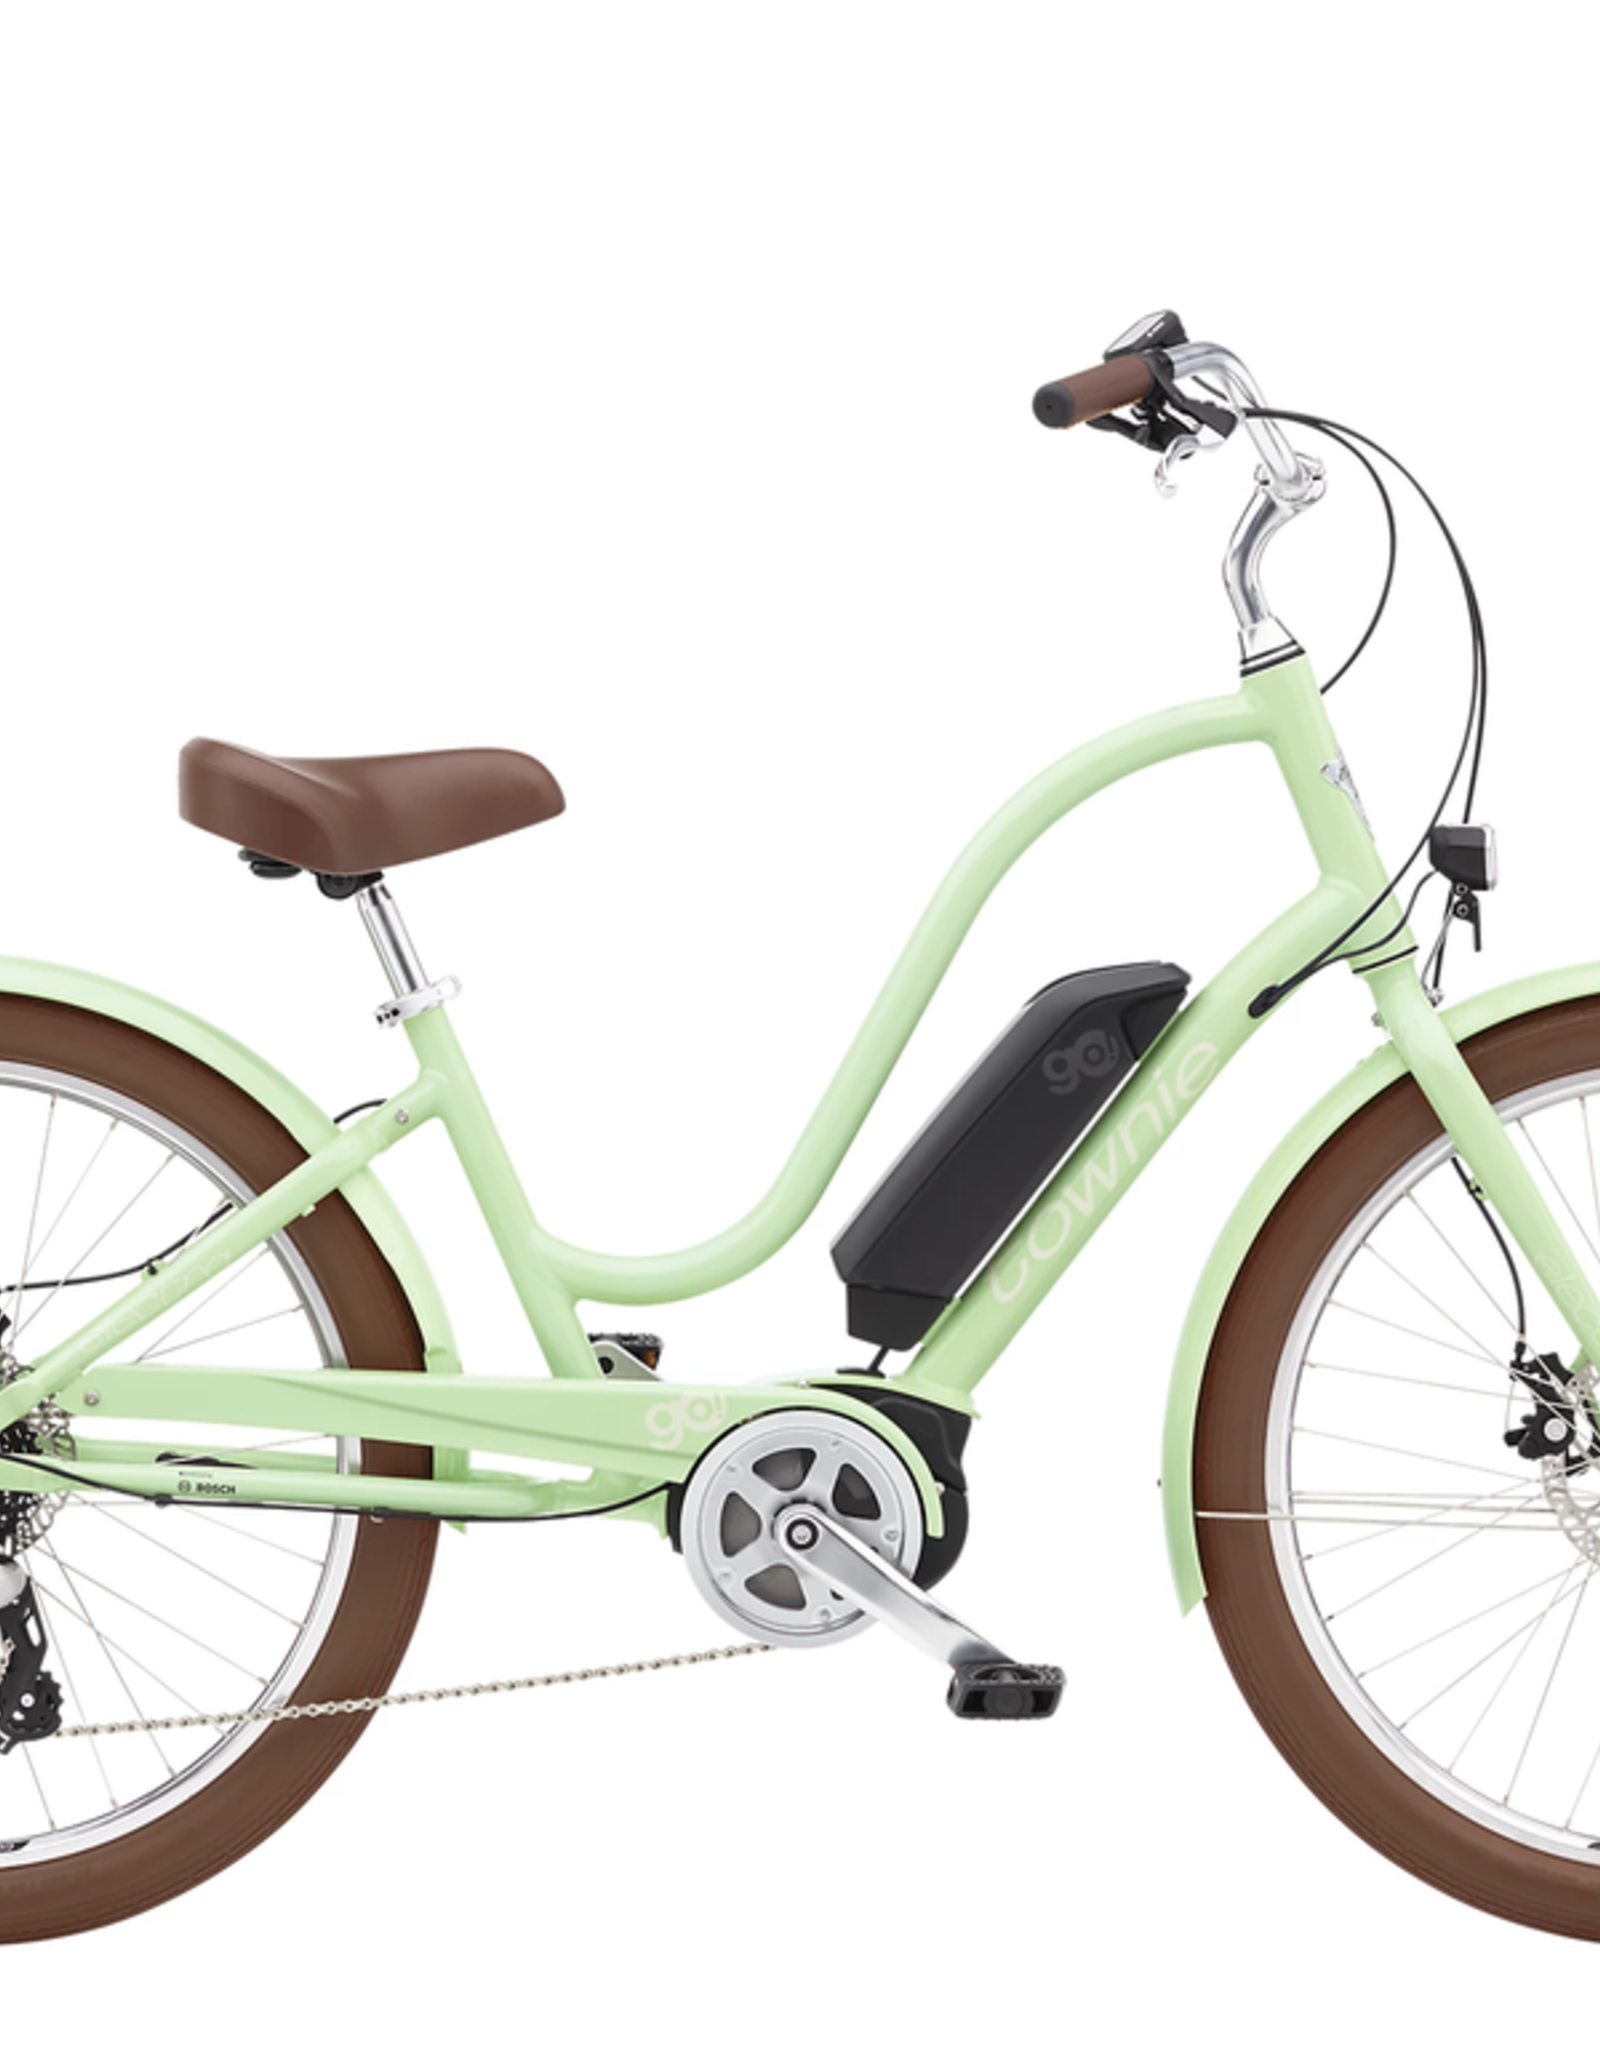 Townie Electra Townie Go! 8D, Ladies